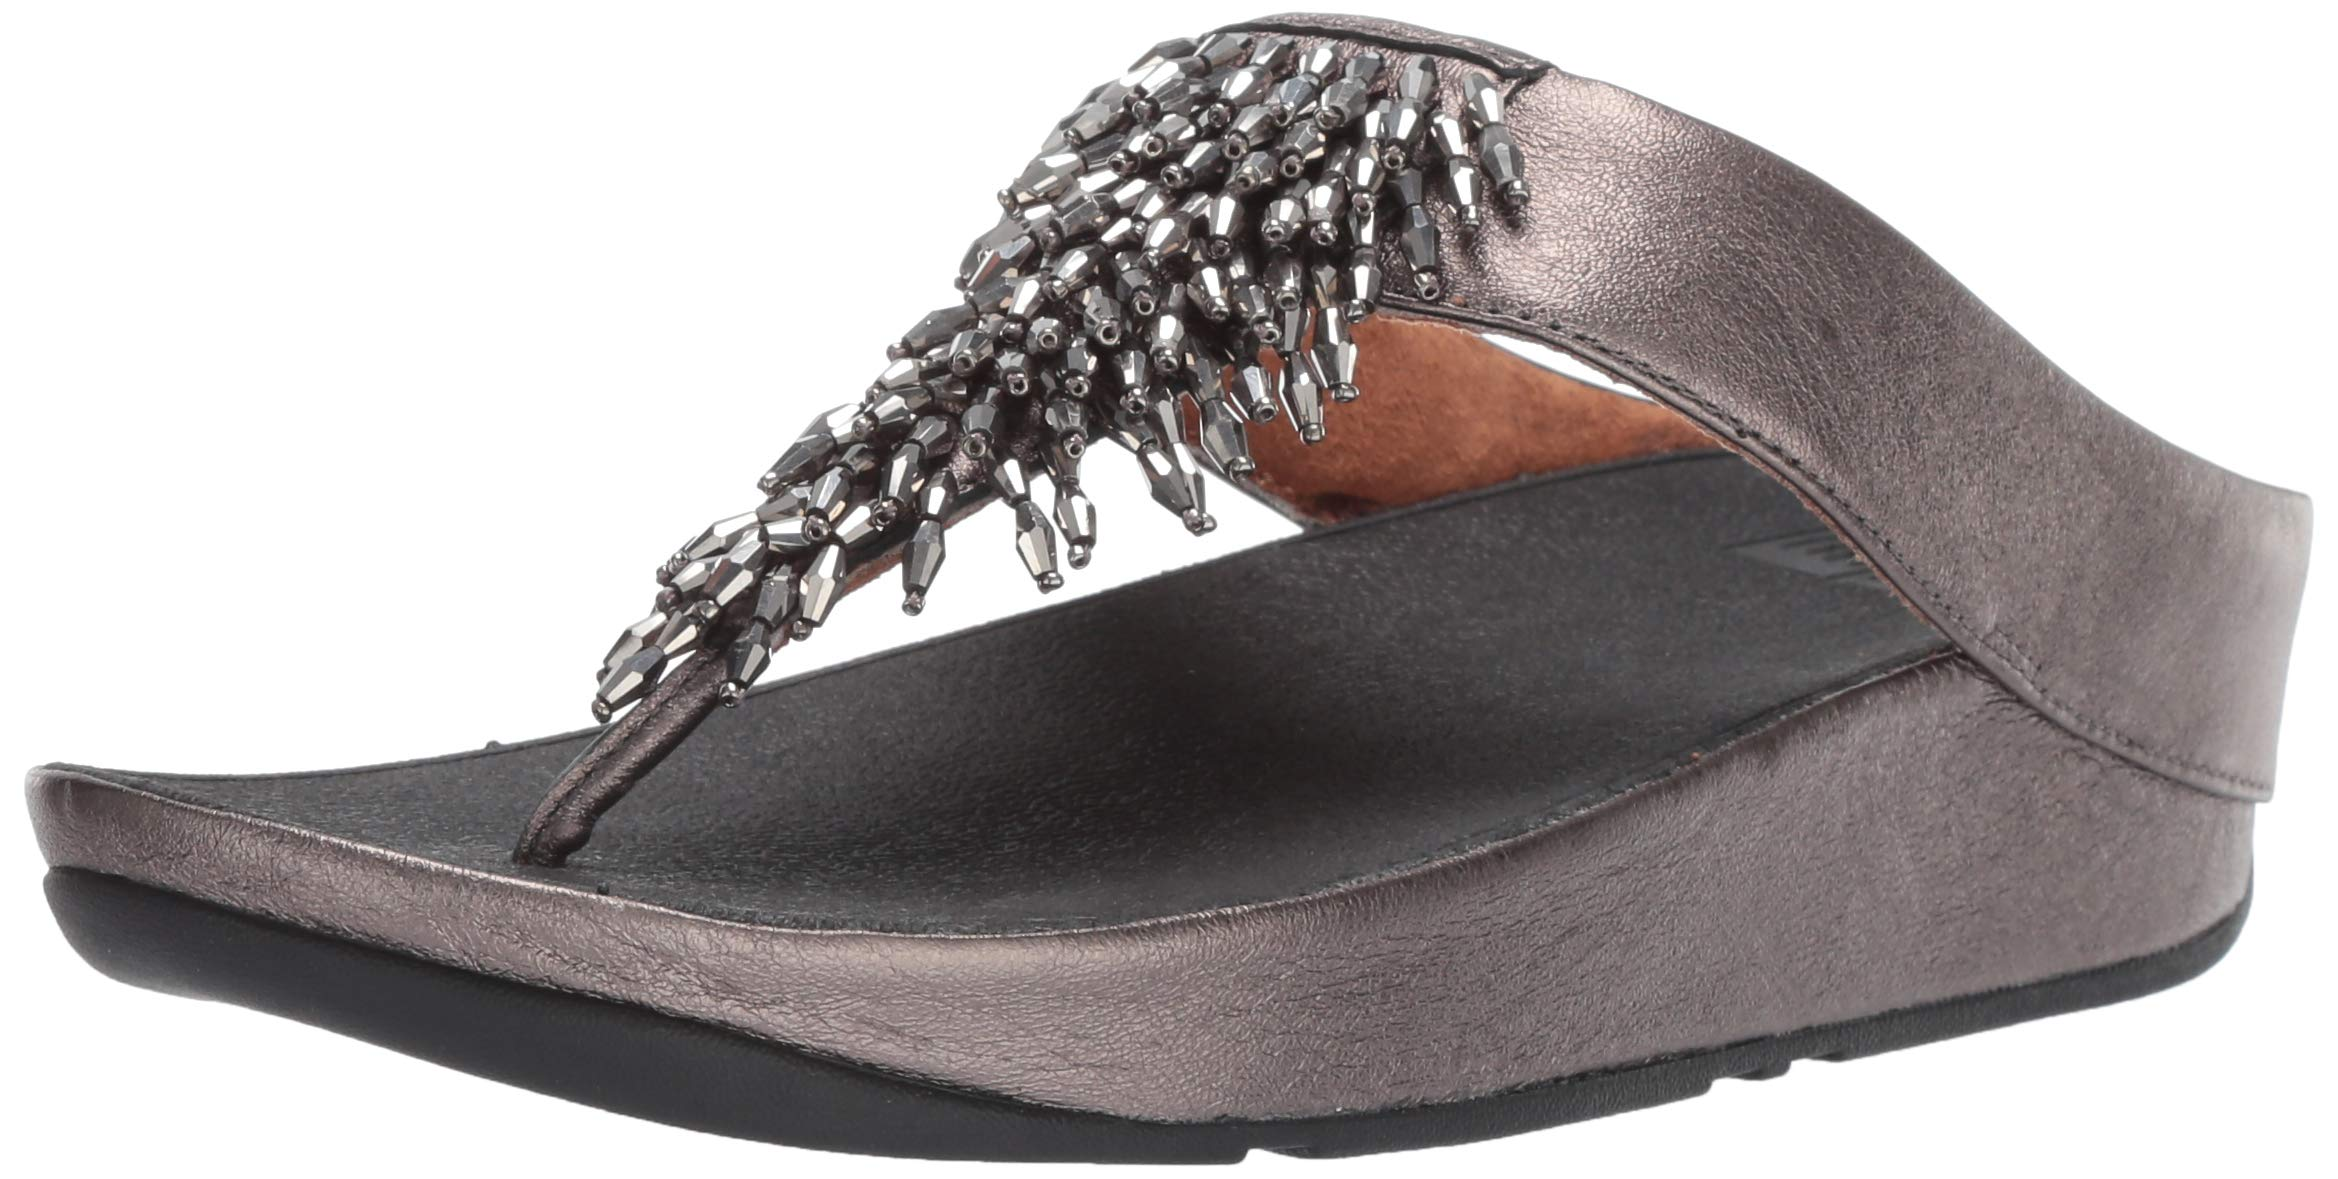 7ea357b2a0c5fc Galleon - FitFlop Women s Rumba Toe-Thong Sandals Flip-Flop